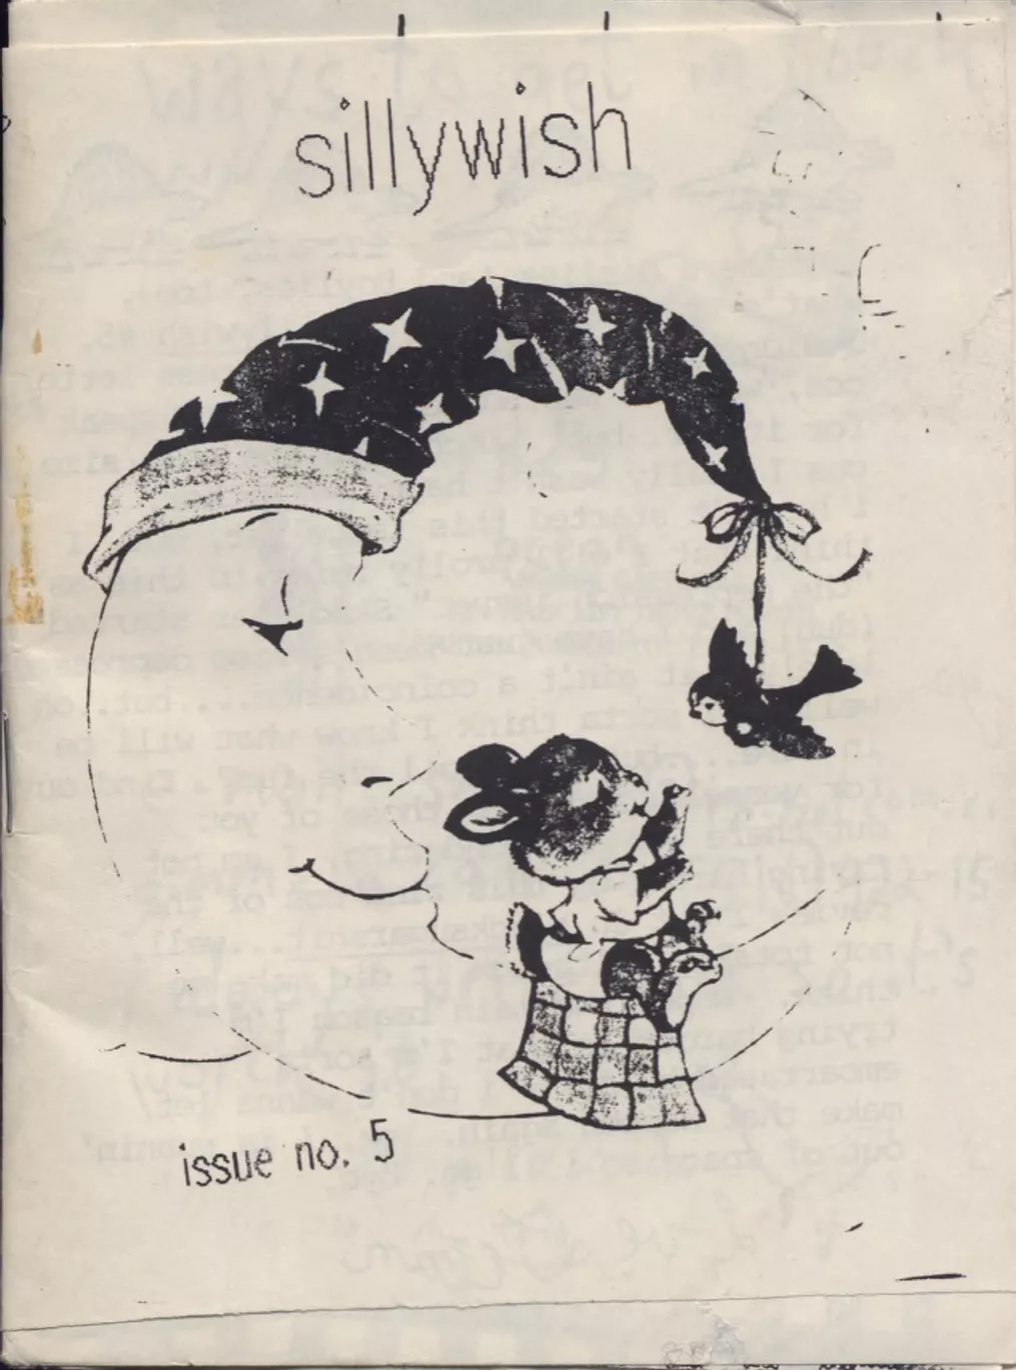 cover of Sillywish zine, issue 5: clip art moon wearing a sorcerer's or sleeping hat, the tip of which is holding a bird. The bird is interacting with a bunny, seated on a blanket on the bottom of the moon's crescent